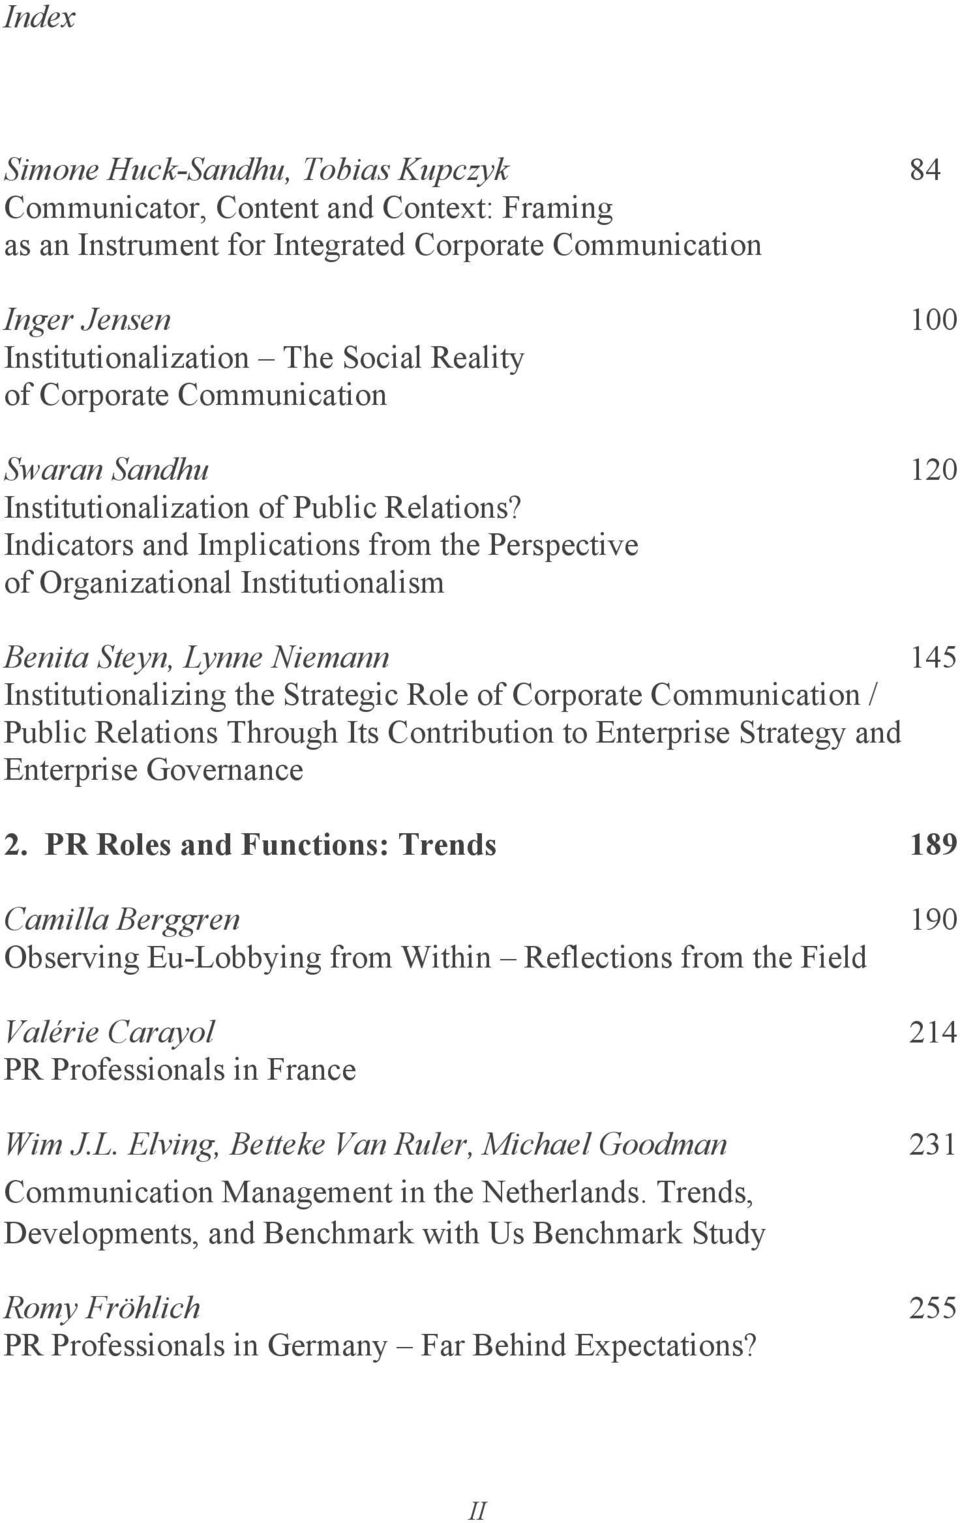 Indicators and Implications from the Perspective of Organizational Institutionalism Benita Steyn, Lynne Niemann 145 Institutionalizing the Strategic Role of Corporate Communication / Public Relations